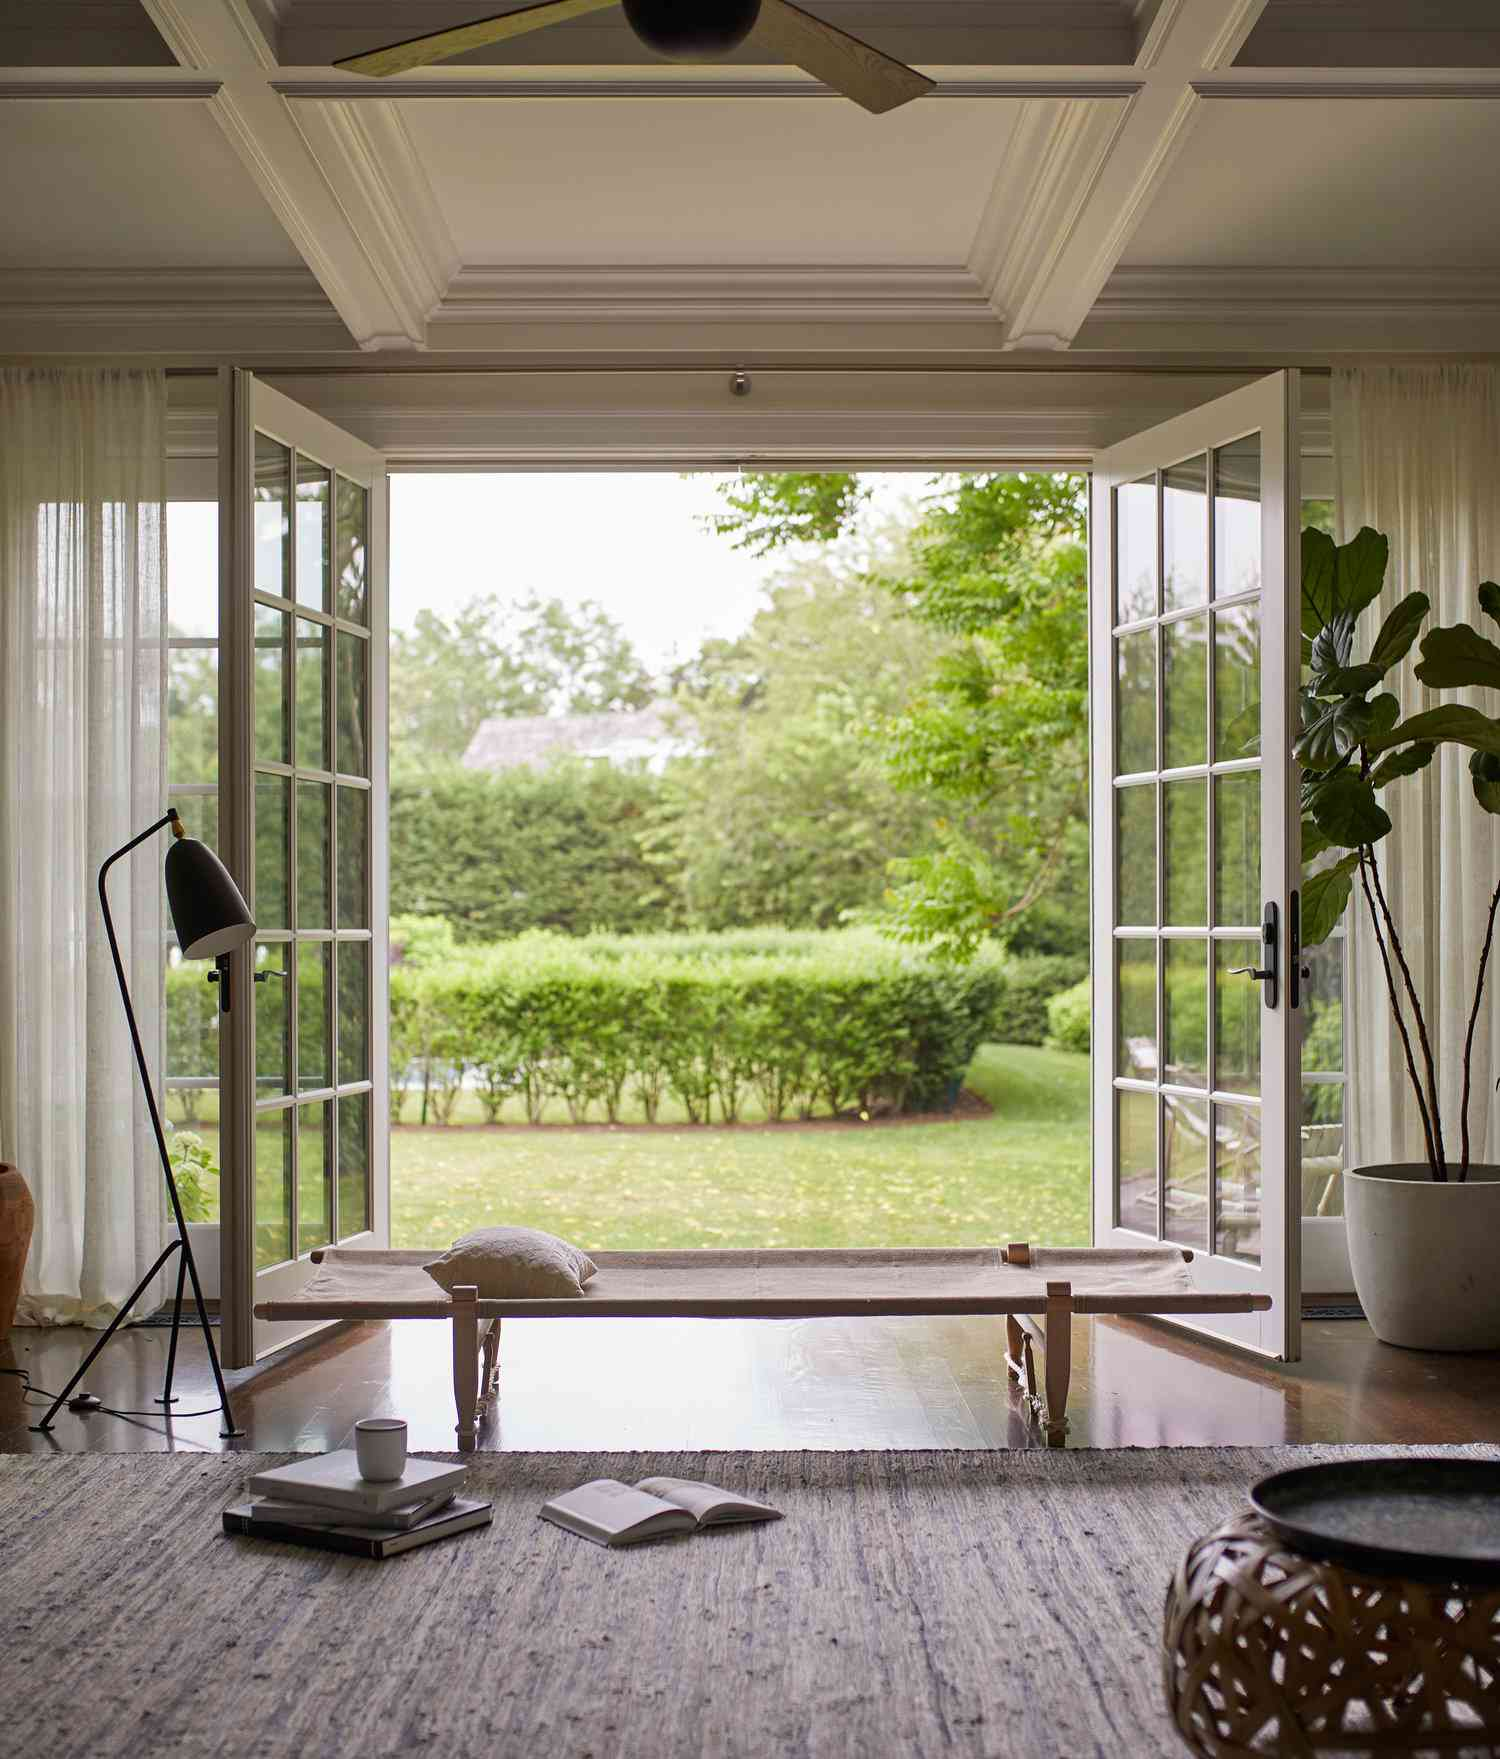 Living room with open French doors looks out on green lawn